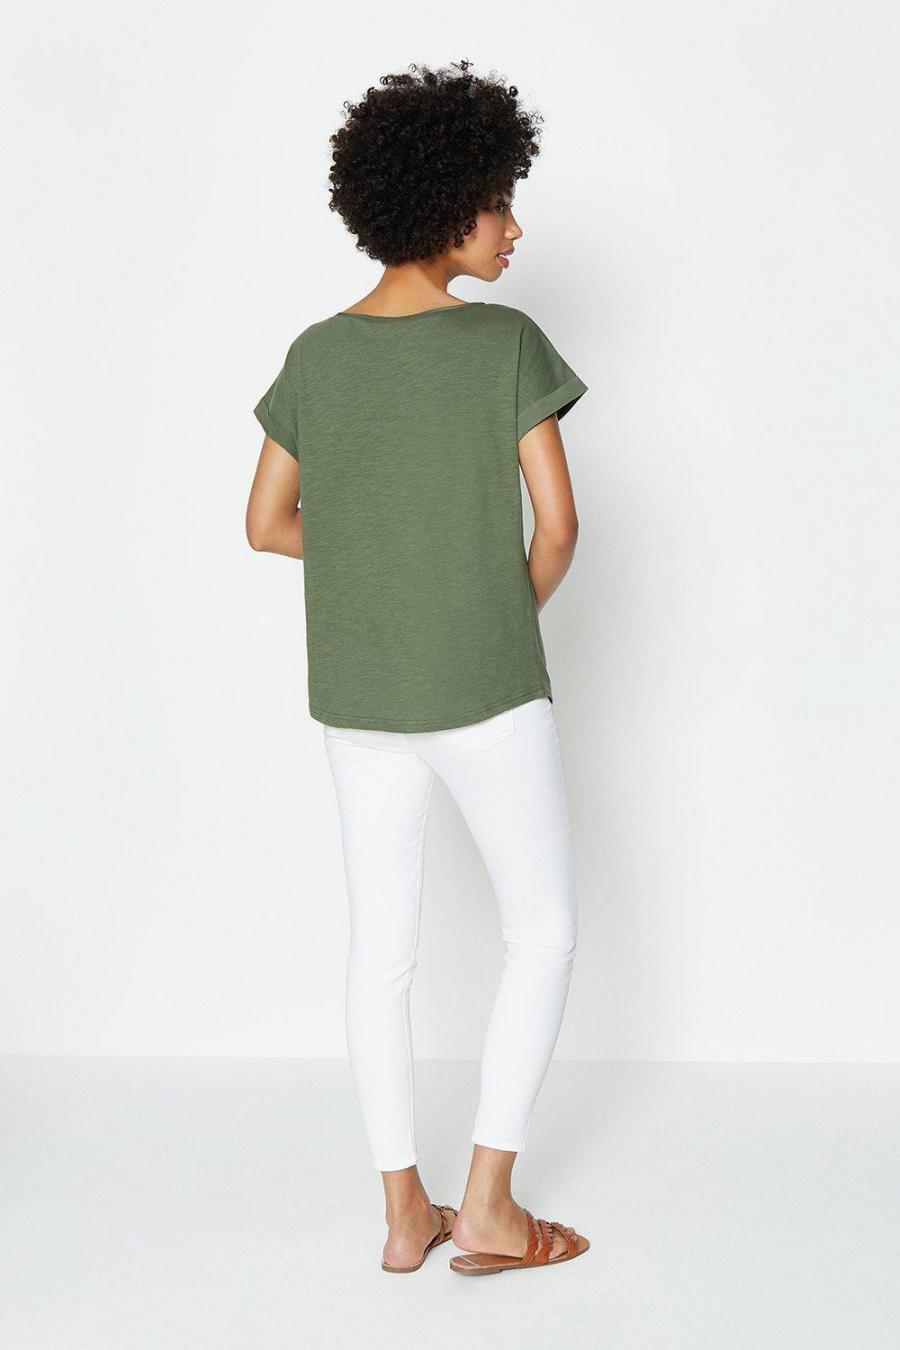 Coast T-Shirts | Womens Cotton Slub Plain T-Shirt Khaki